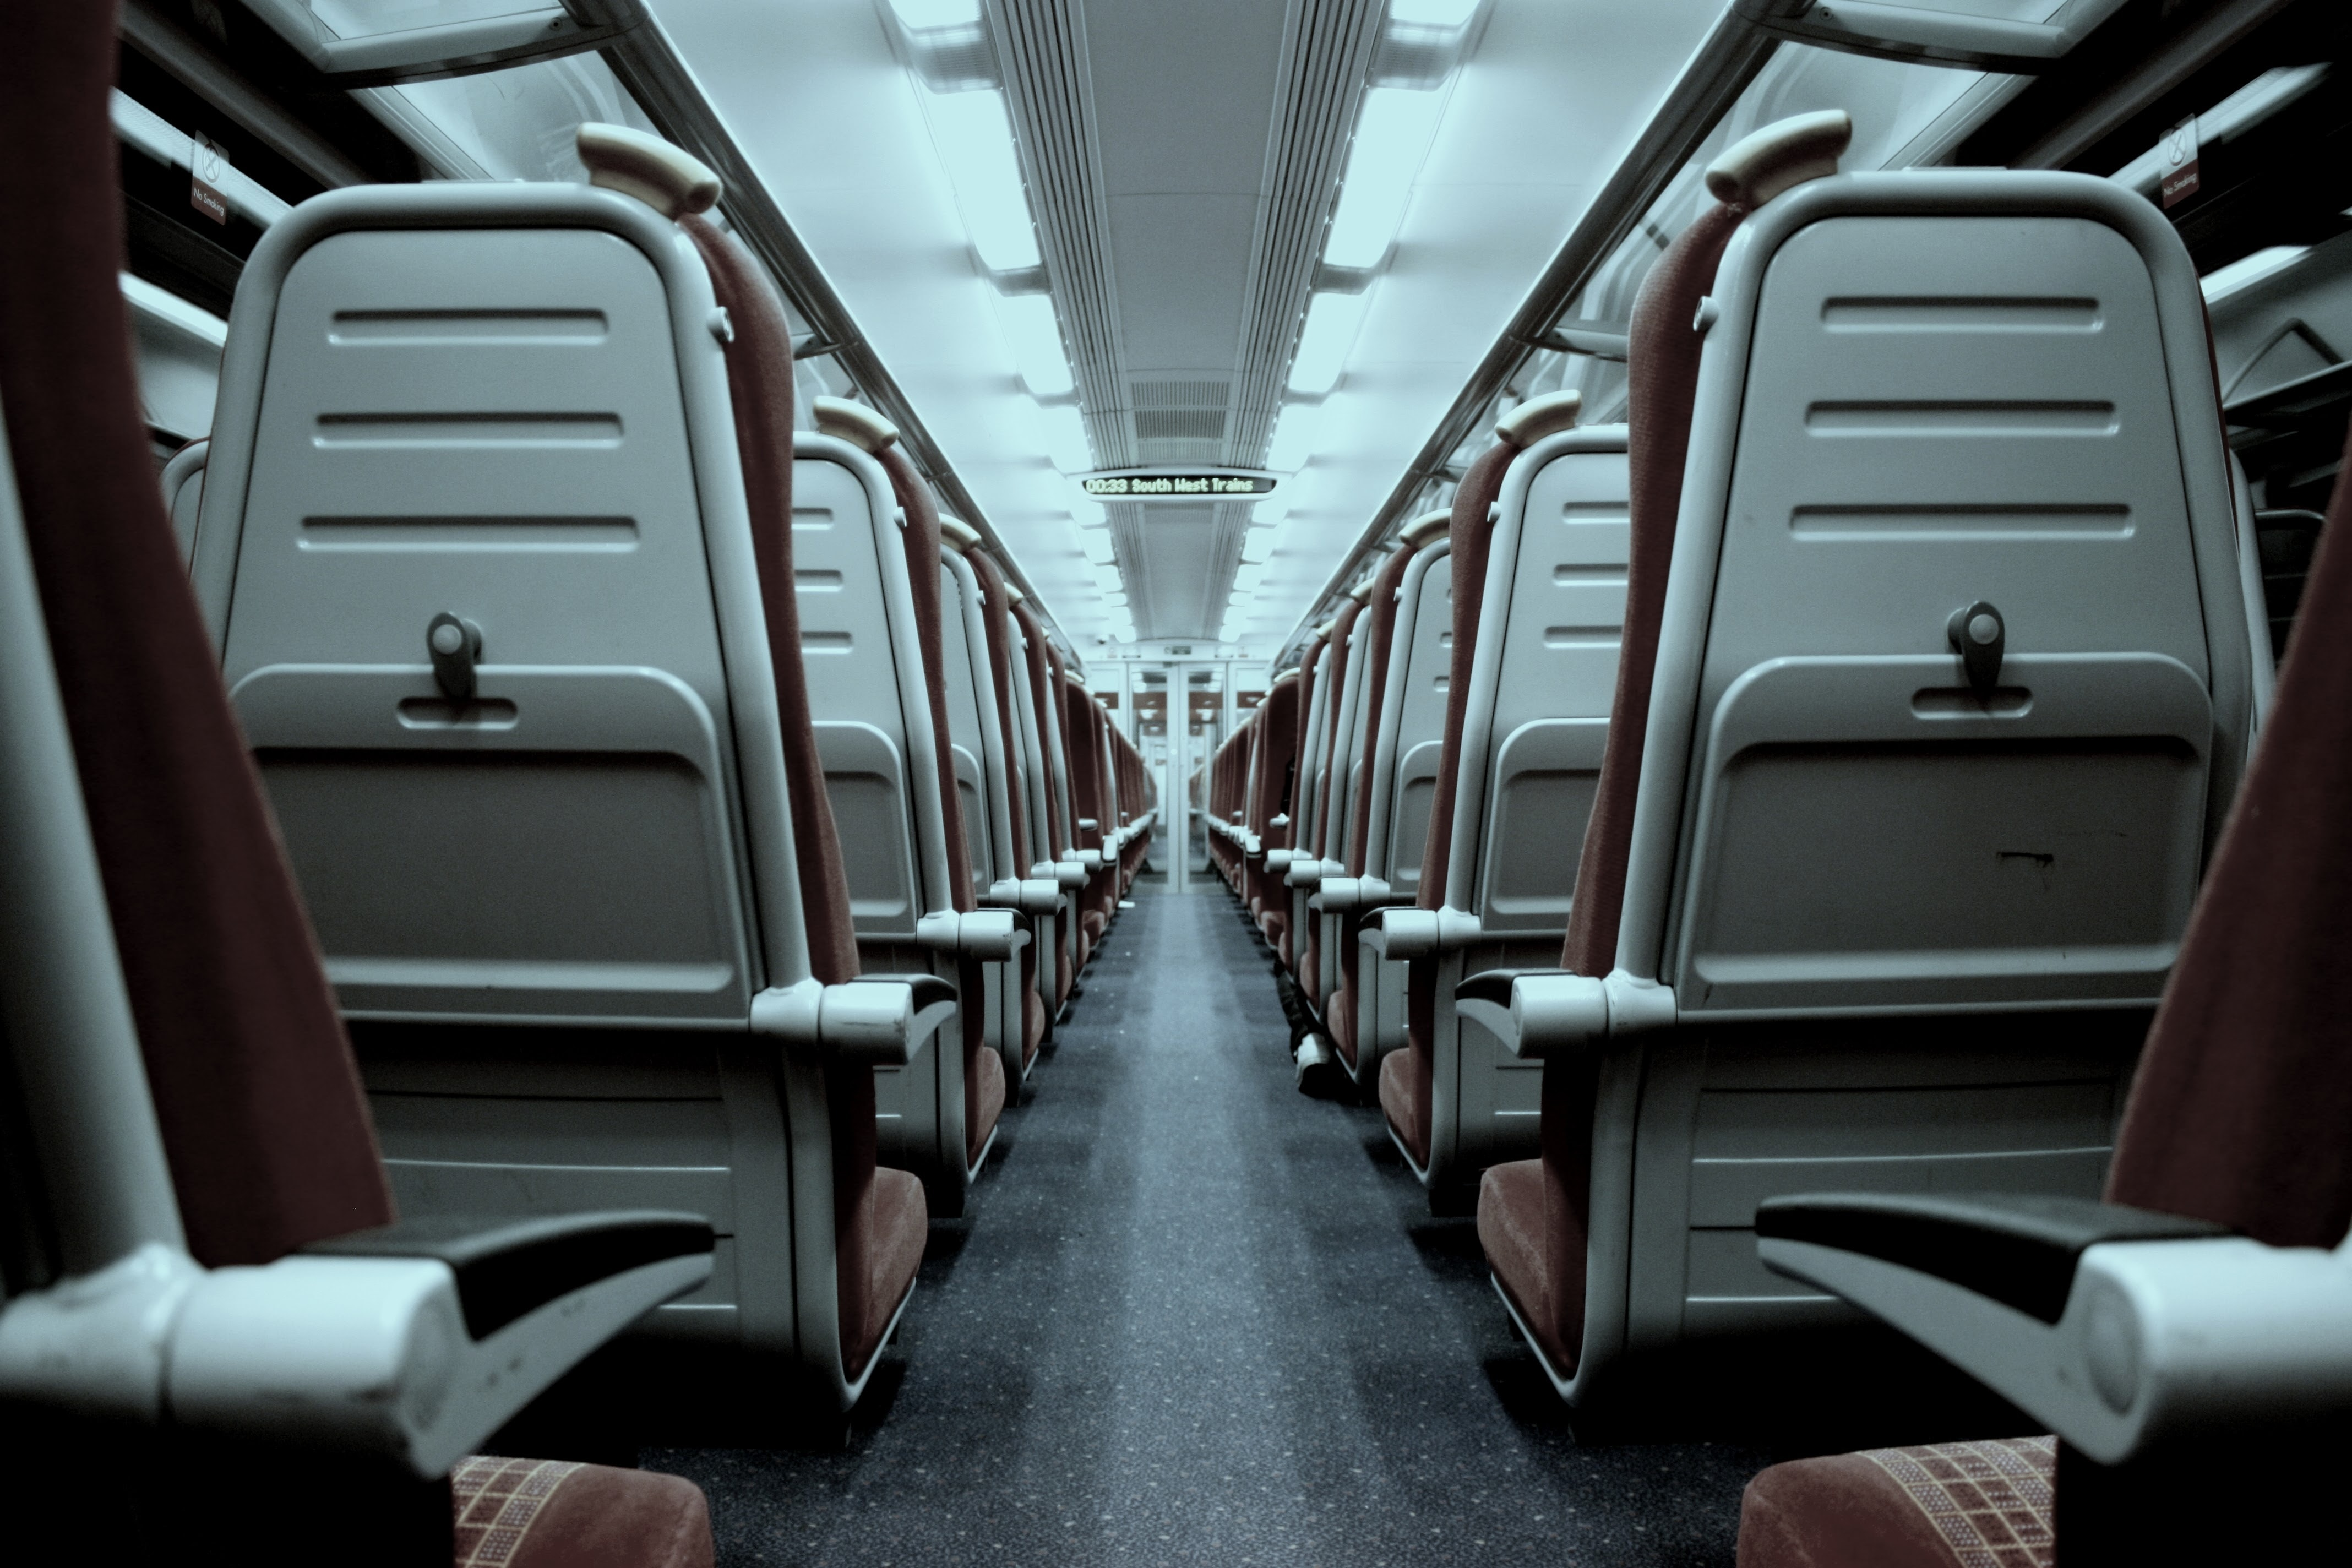 View from the back of the aisle in an empty train